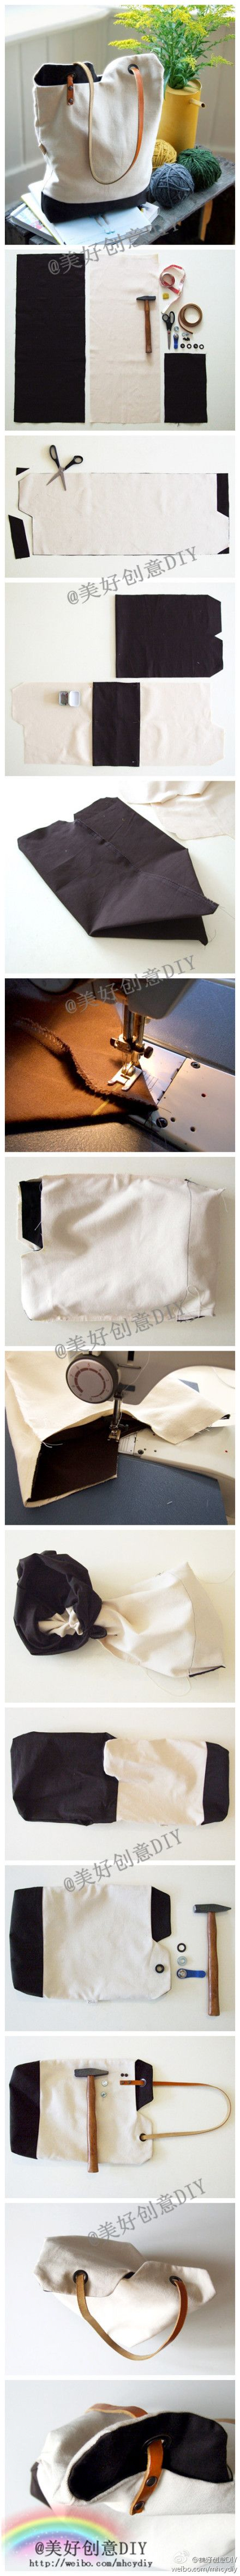 DIY bag--link appears to be broken, but the steps in the picture look fairly clear.